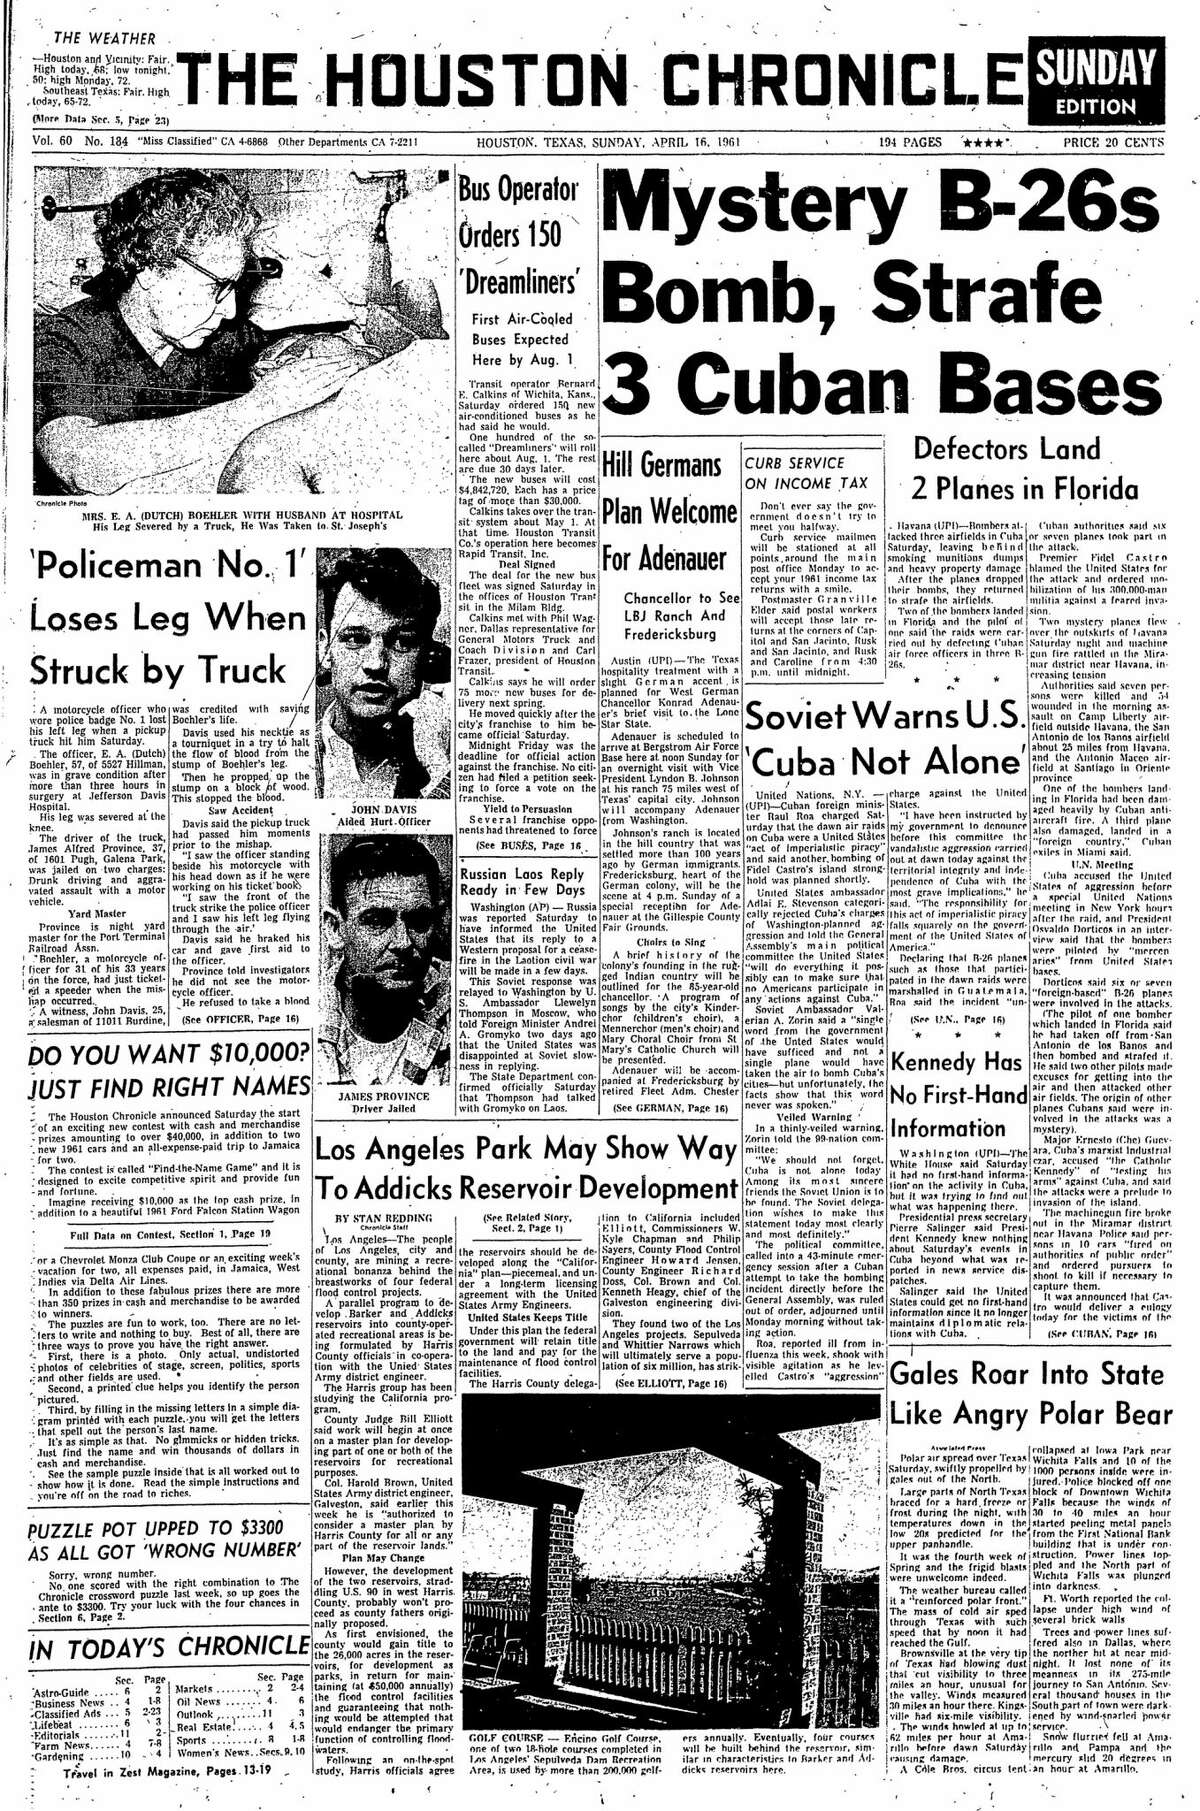 Houston Chronicle front page from April 16, 1961.